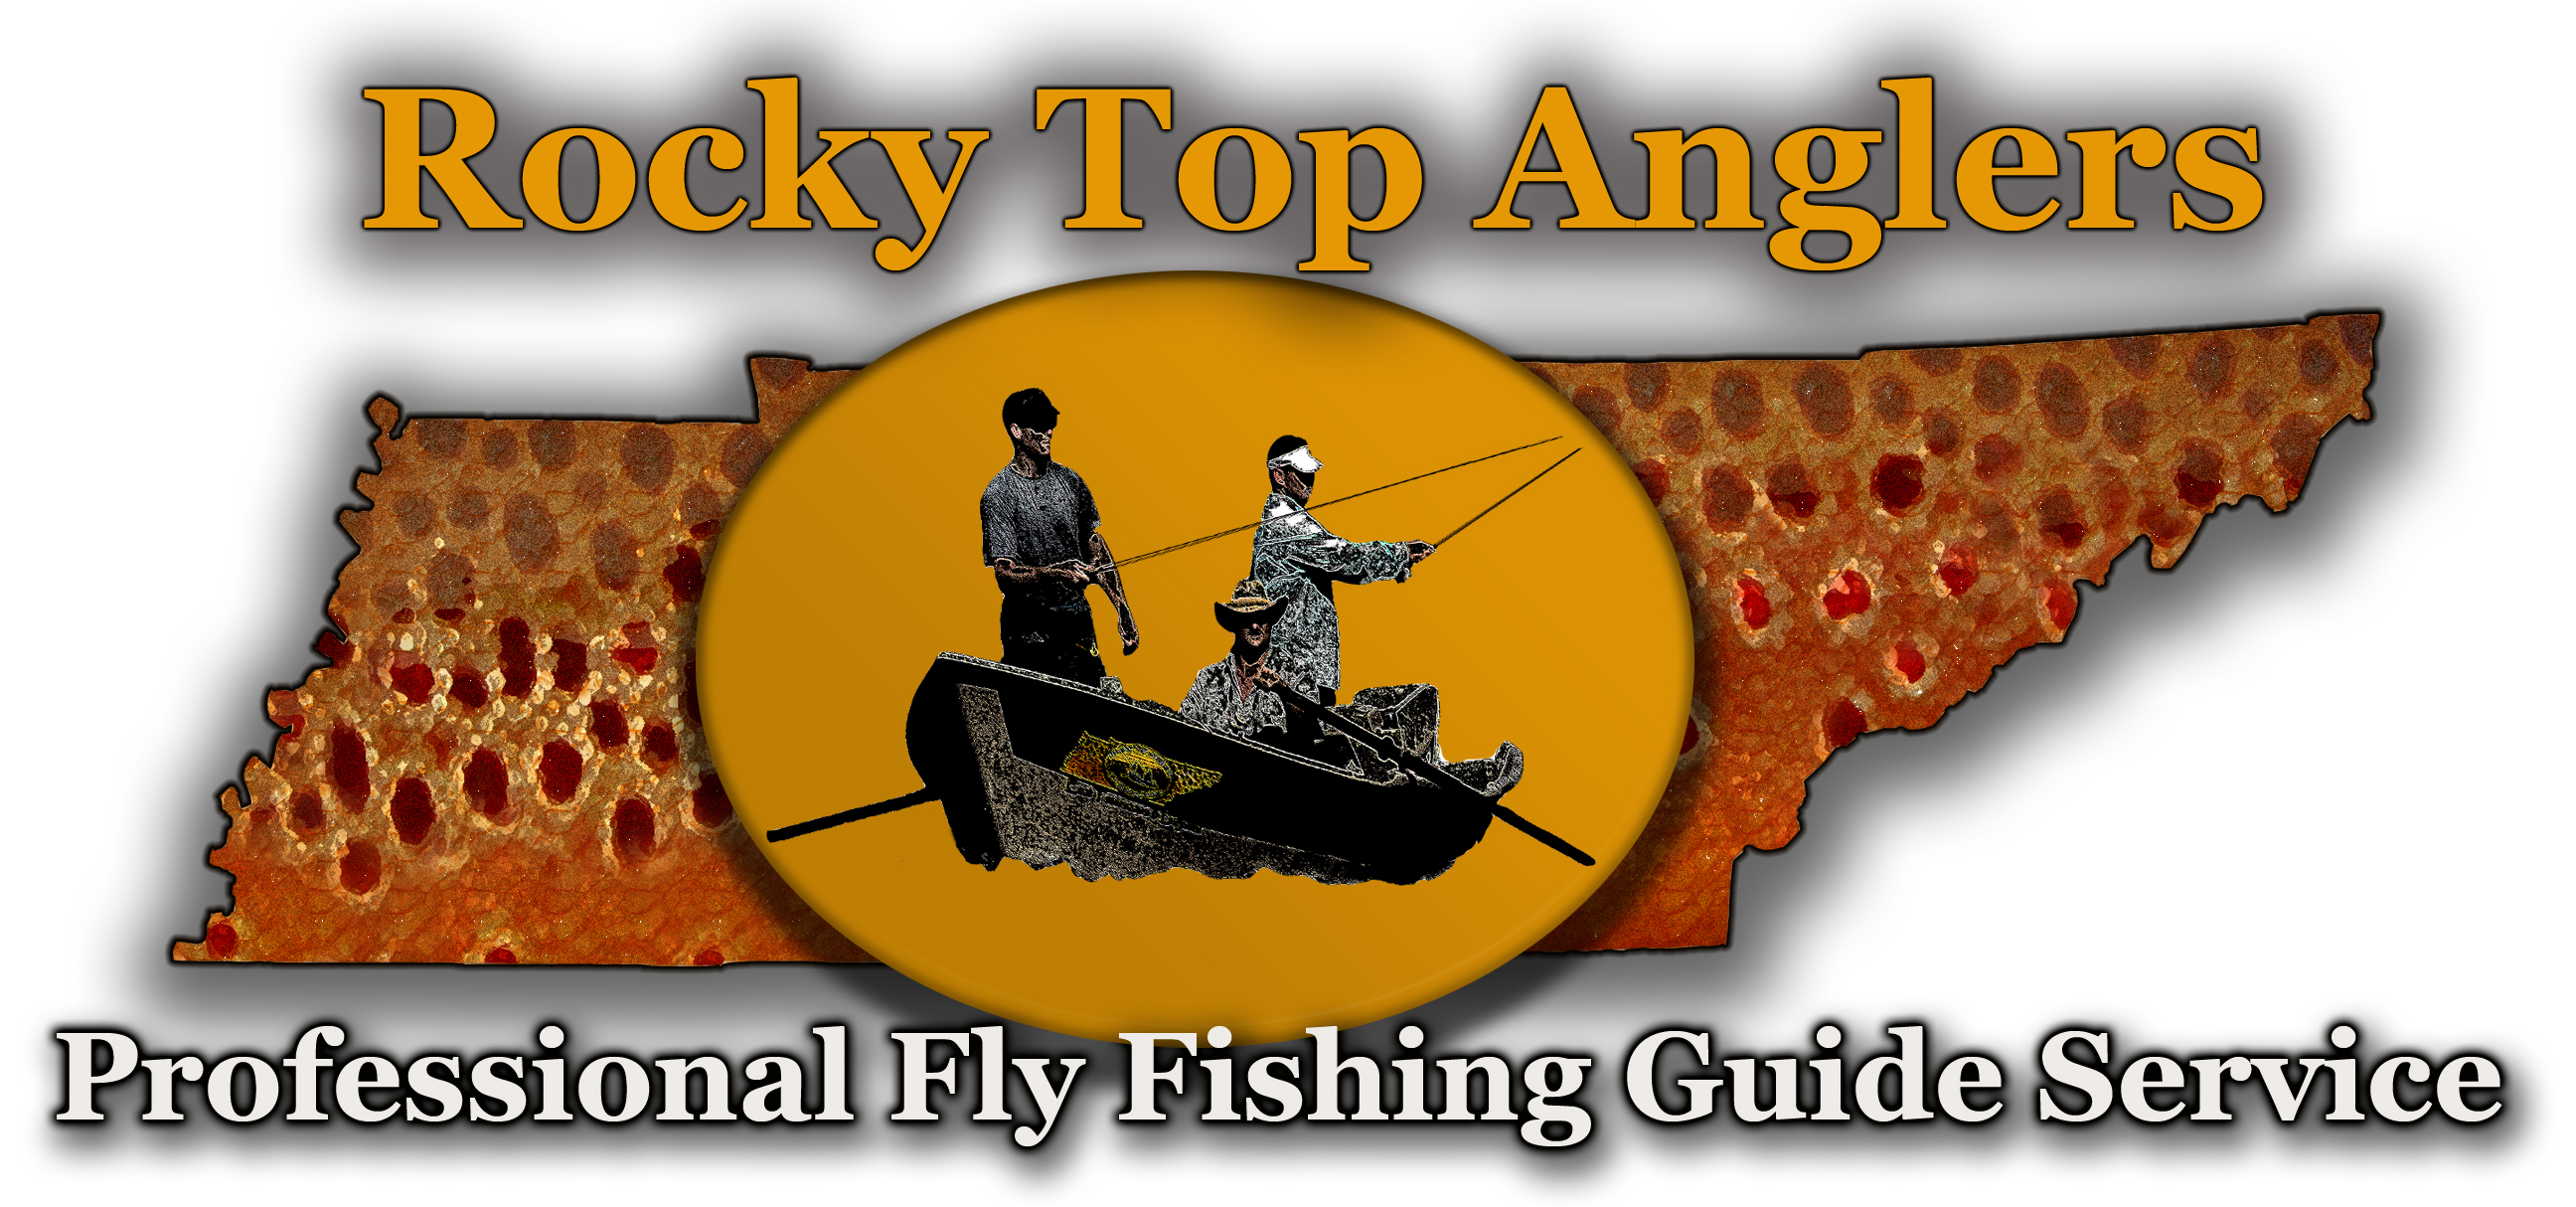 Rocky Top Anglers is a professional guide service and fly fishing outfitter.